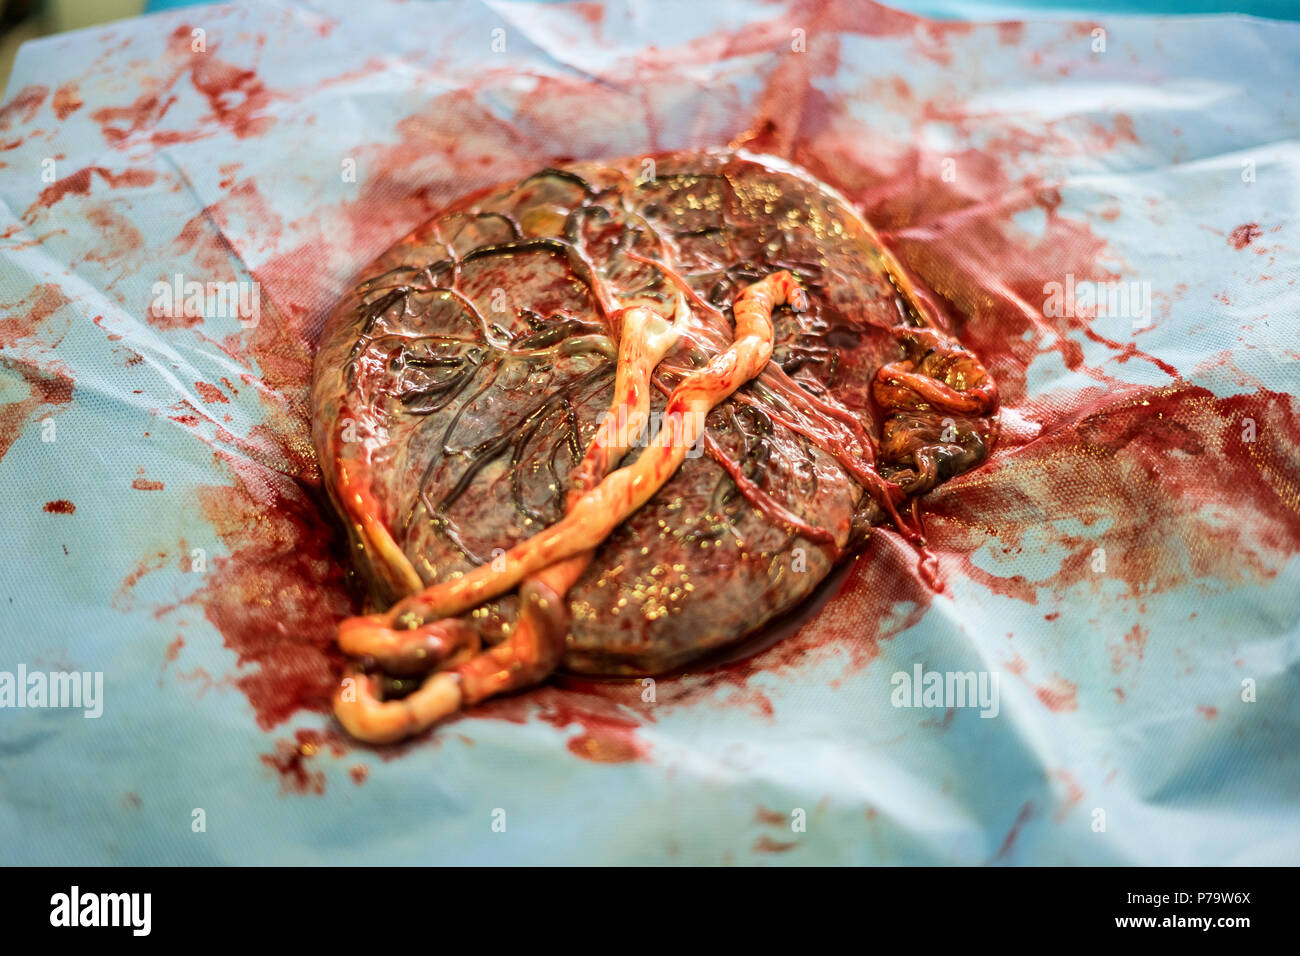 Placenta outside uterus just after childbirth in the hospital - Stock Image